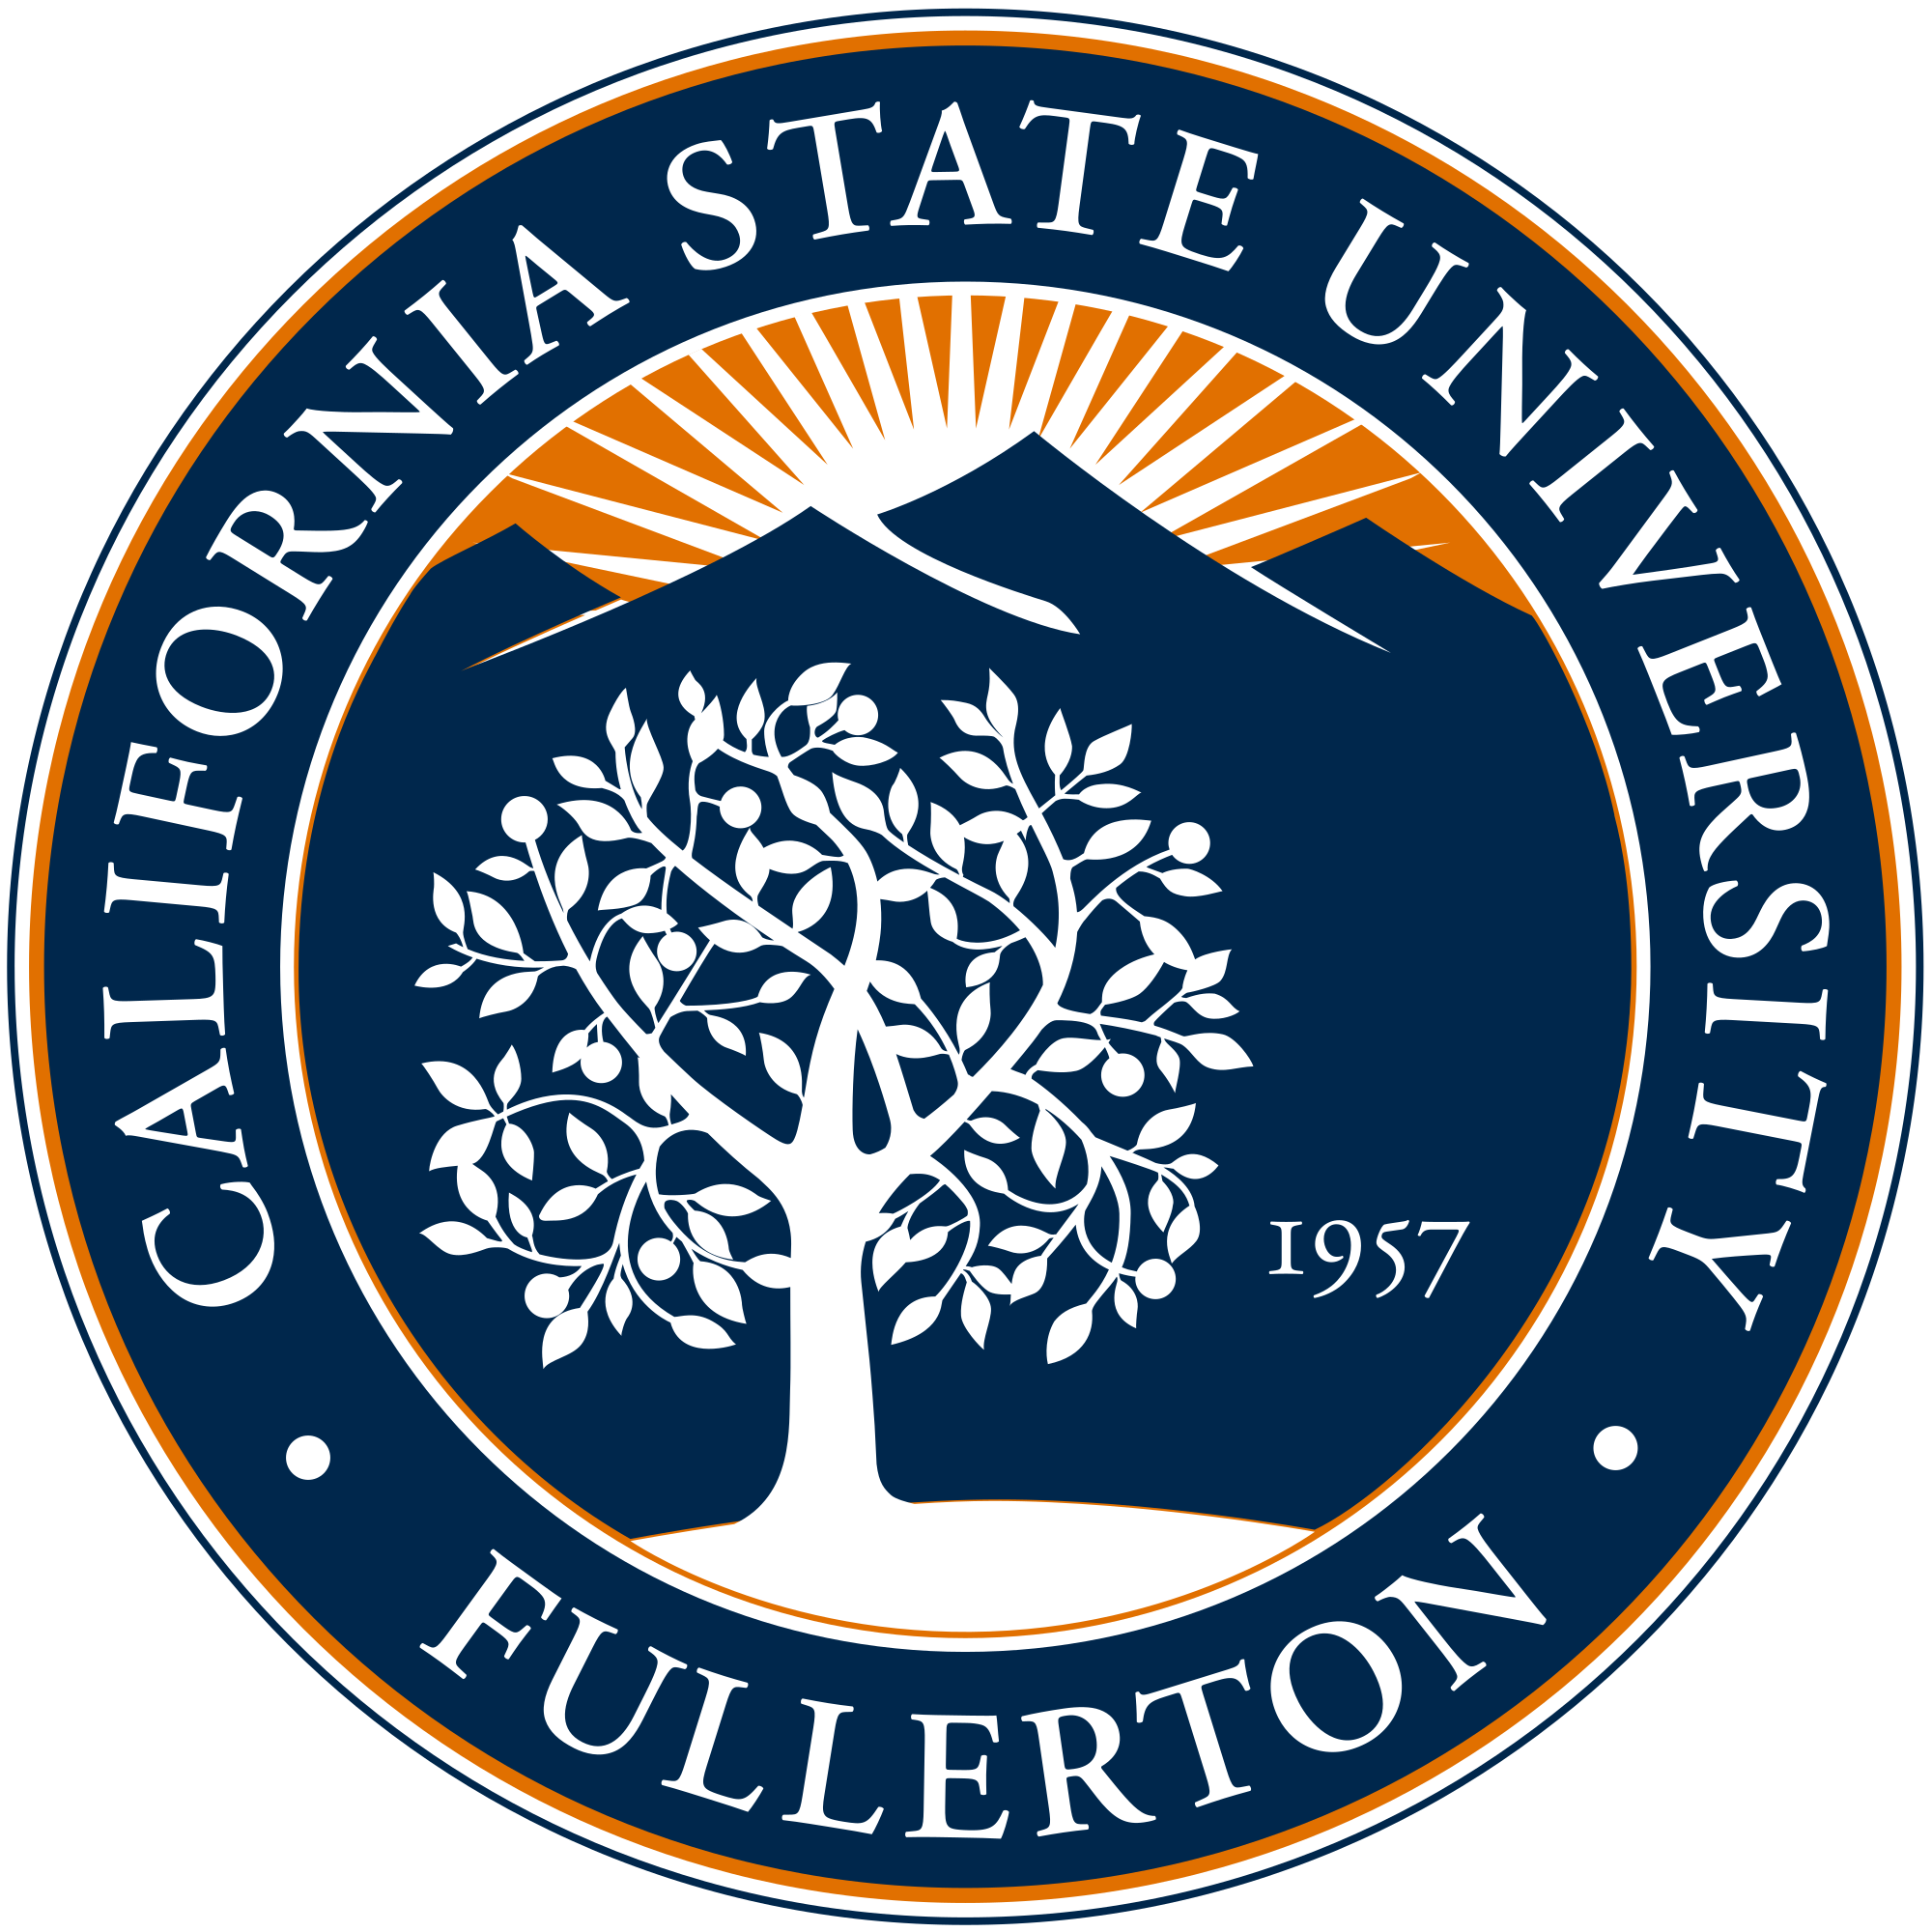 CSUF College of Education - 2600 E. Nutwood Ave., Suite 500College Park (CP-500)Fullerton, CA 92831Phone: (657) 278-3411